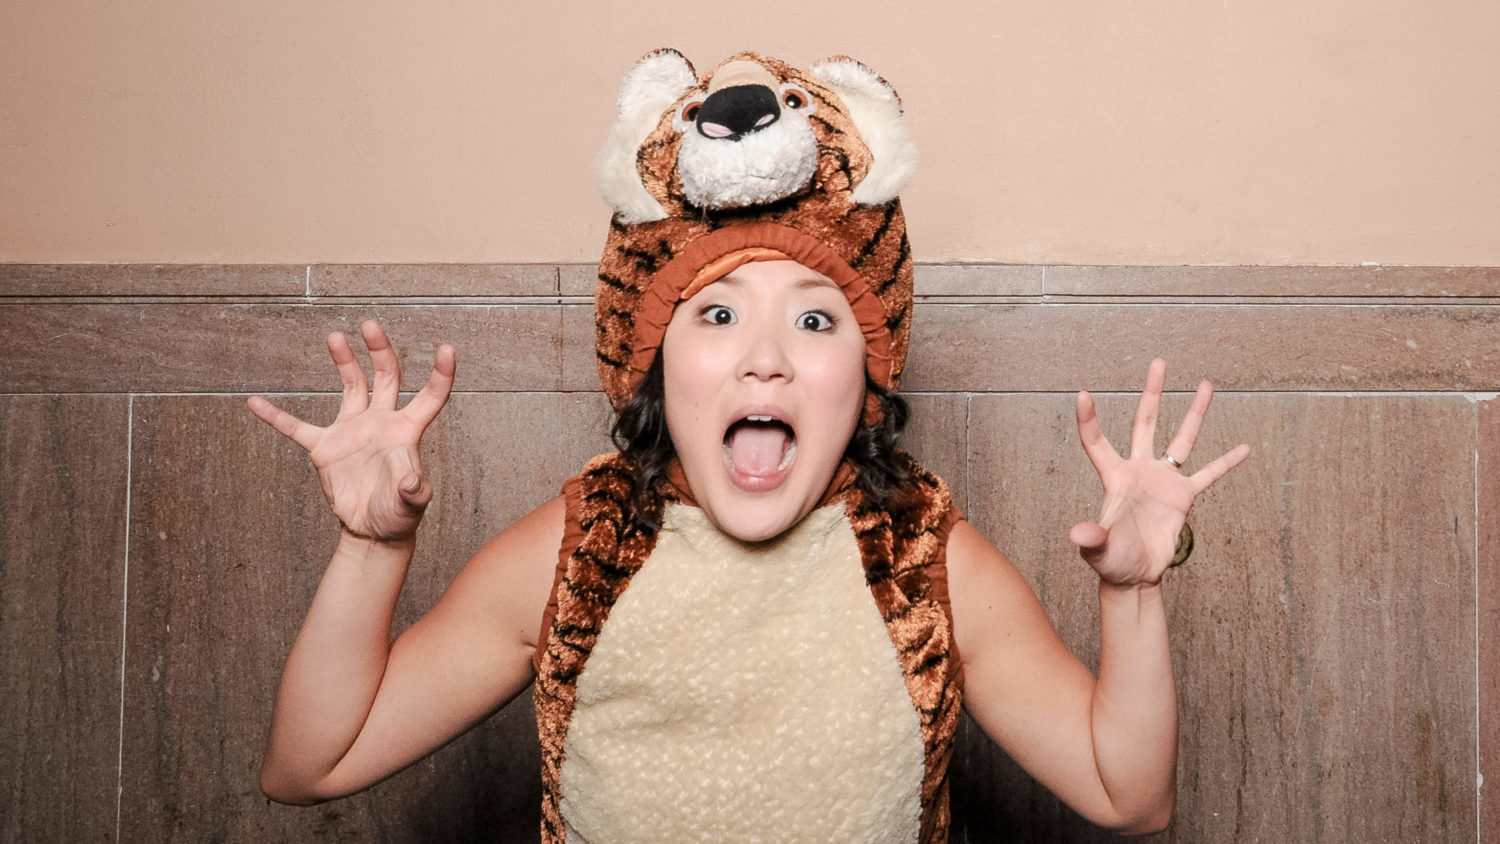 funny tiger costume in wedding photo booth